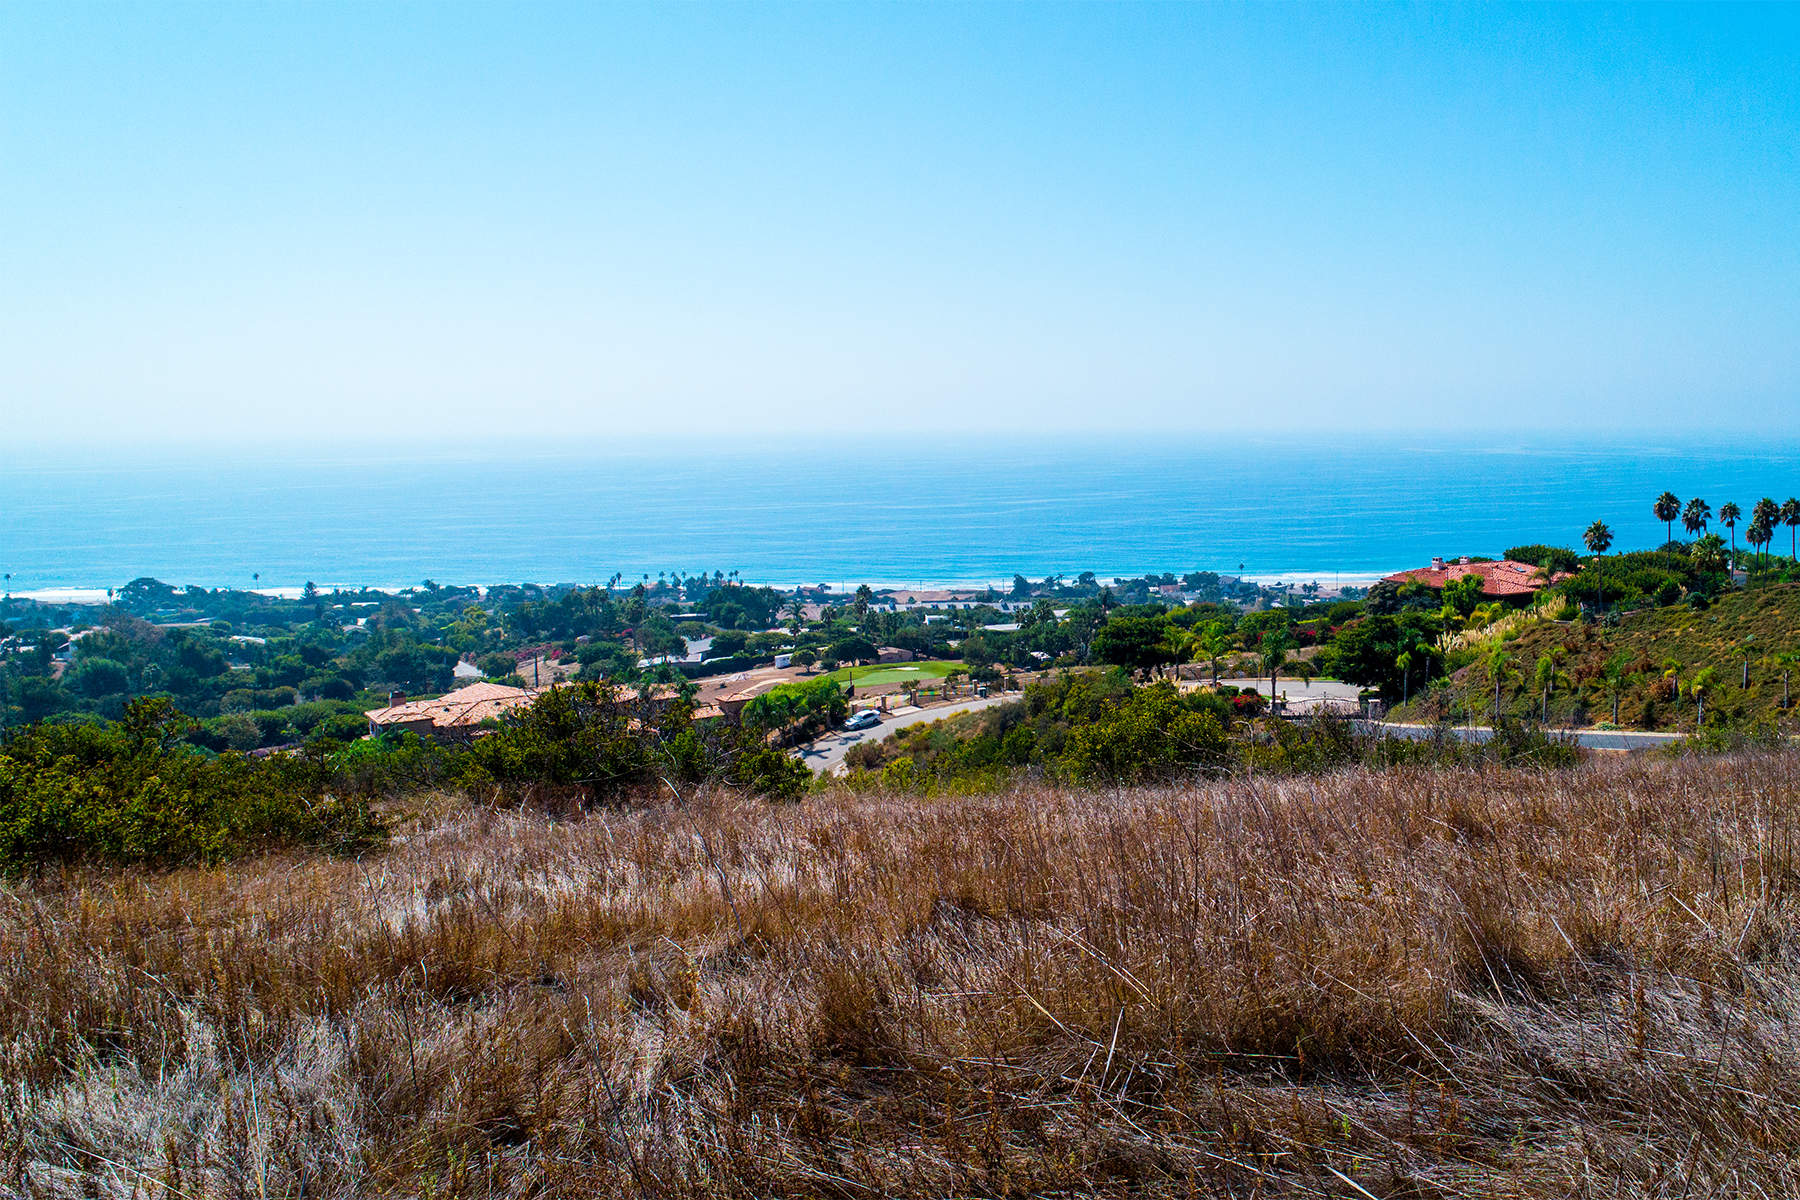 Land for Sale at PanoramicSeaView.com 2 Sea View Drive, Malibu, California, 90265 United States